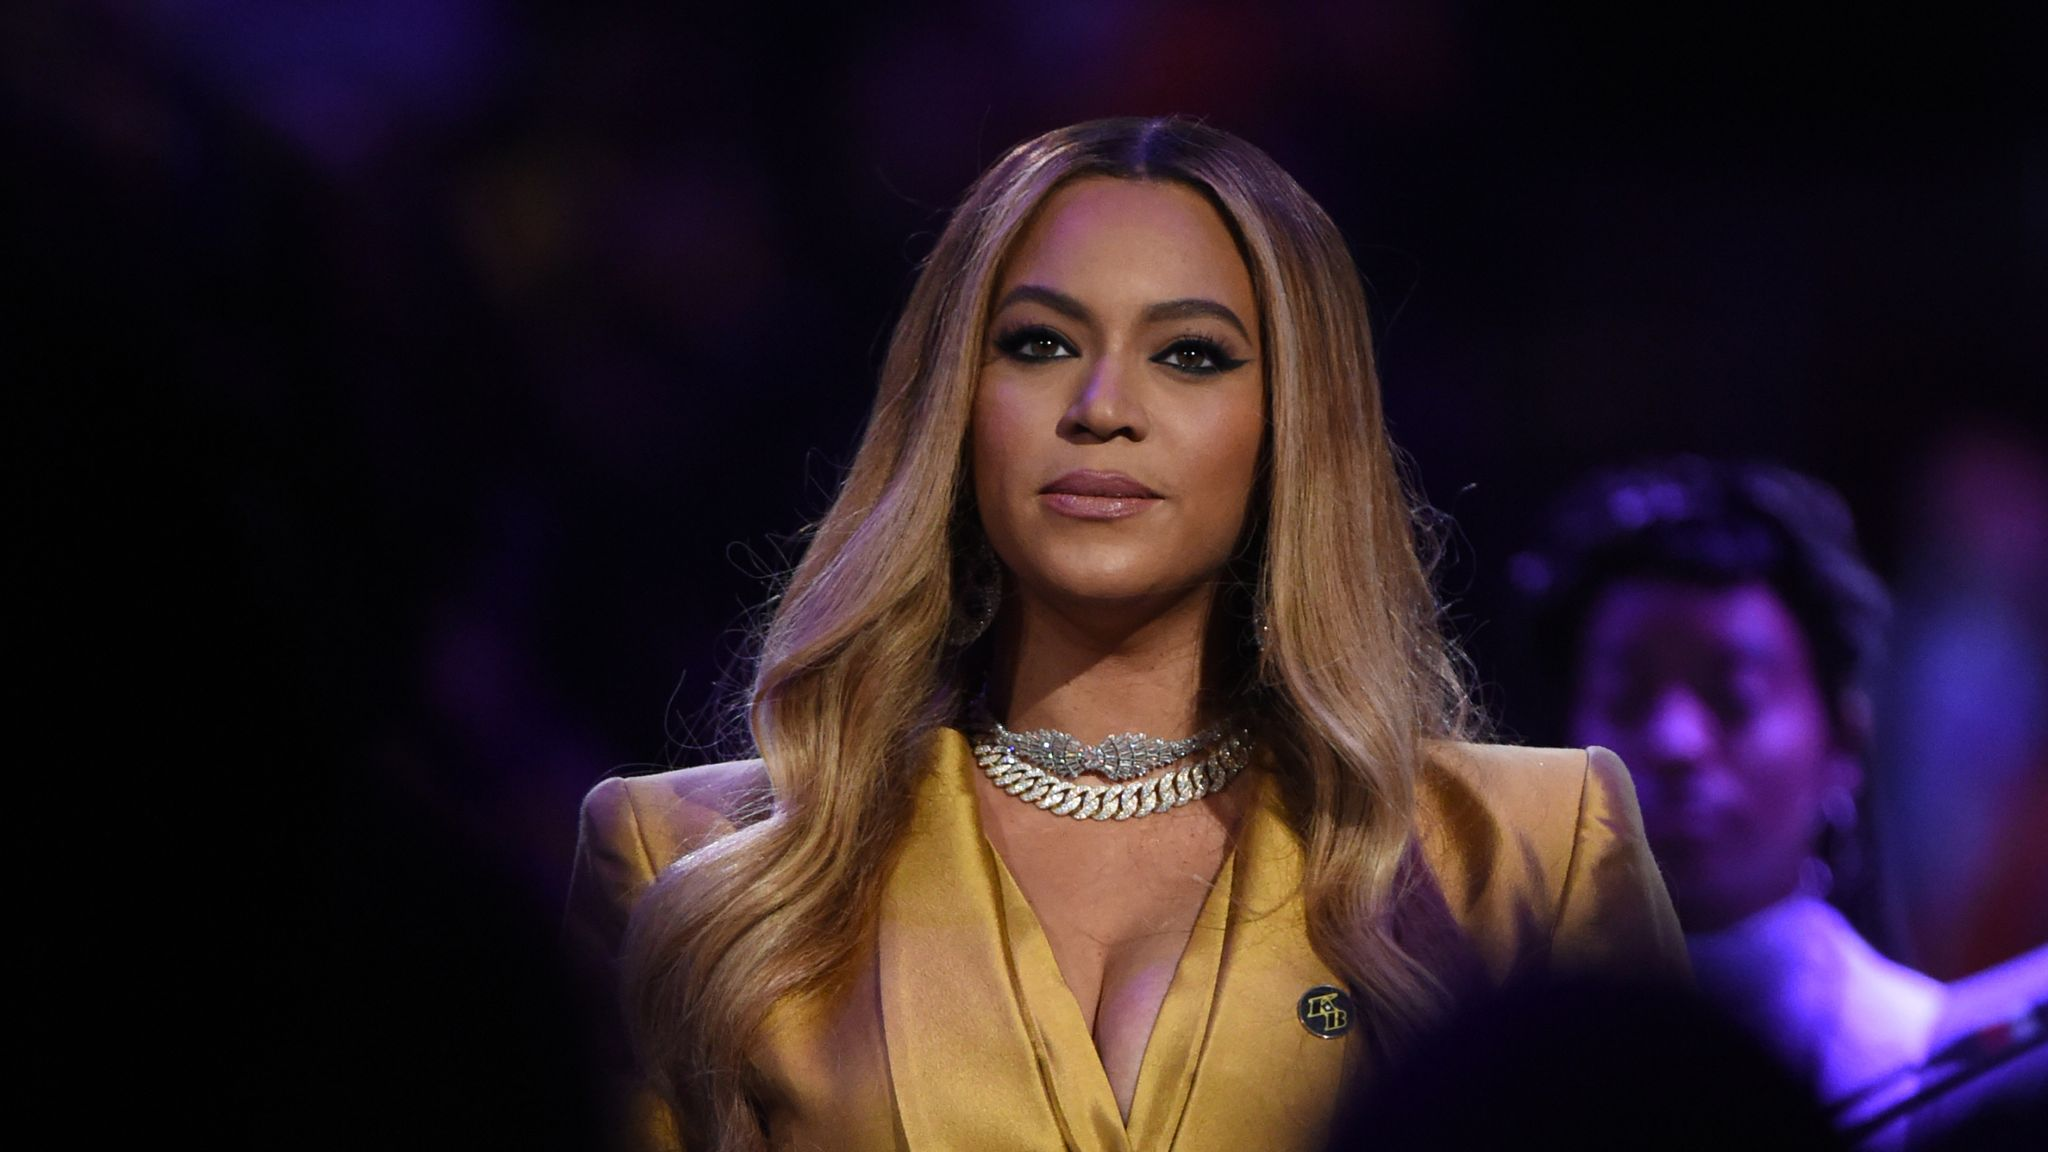 Beyonce Teams Up With A Prestigious Company To Gift UBCU Student A 2-Year Digital Membership